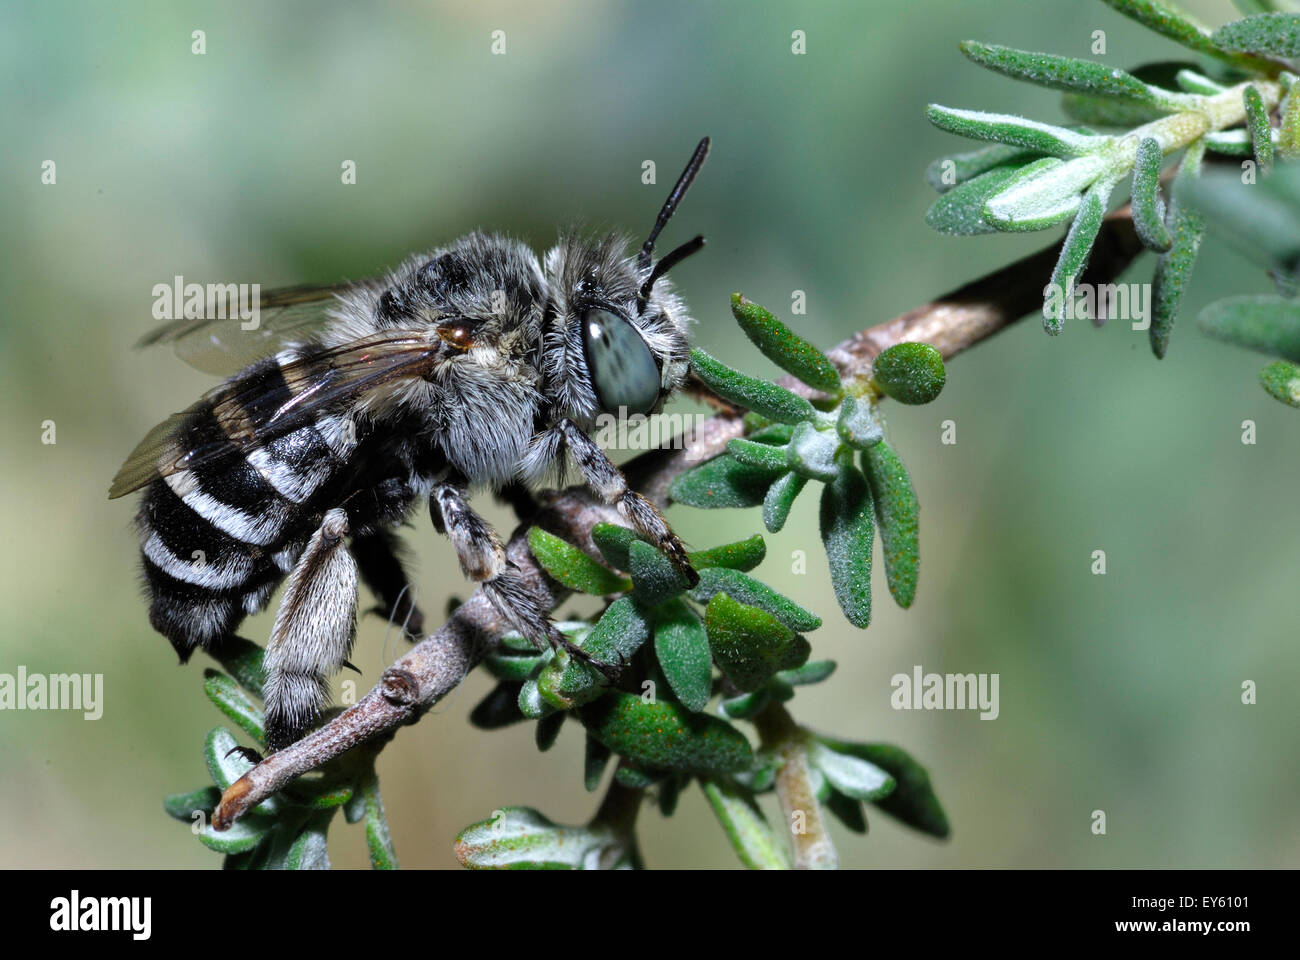 Anthophora Bee grooming on a twig - Ardeche France - Stock Image